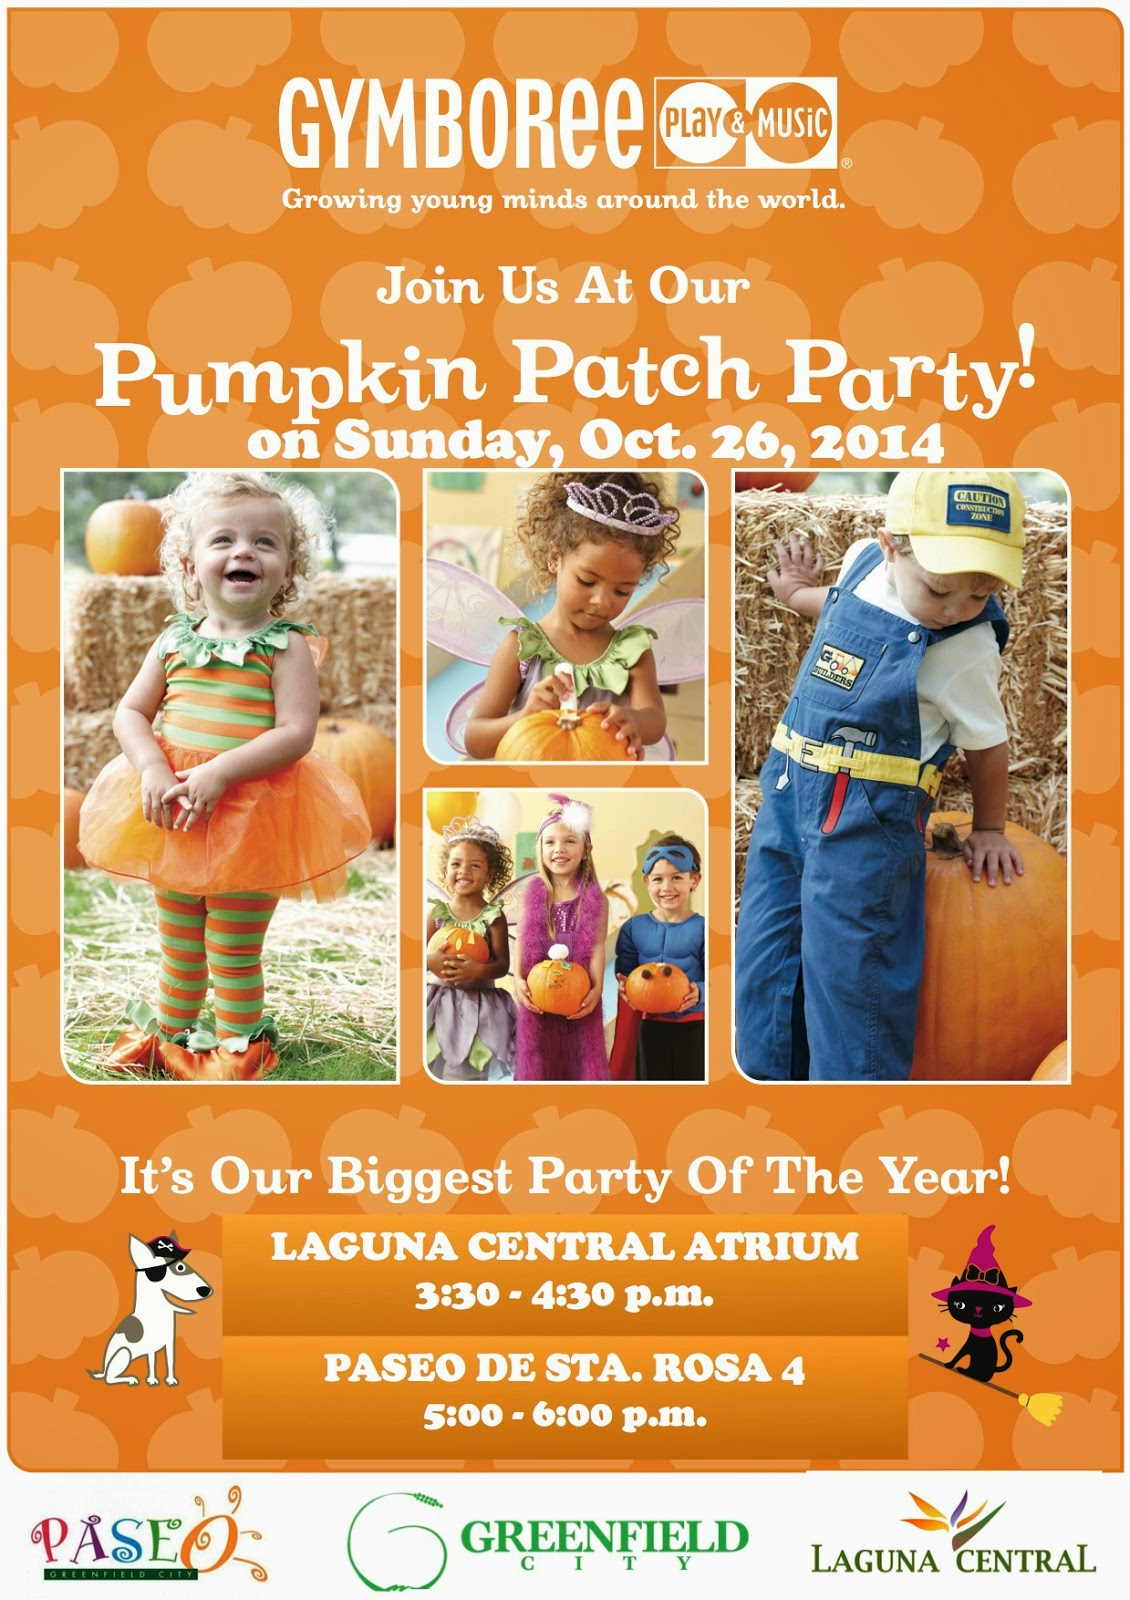 Gymboree  Sta. Rosa's Pumpkin Patch Party at Greenfield City!